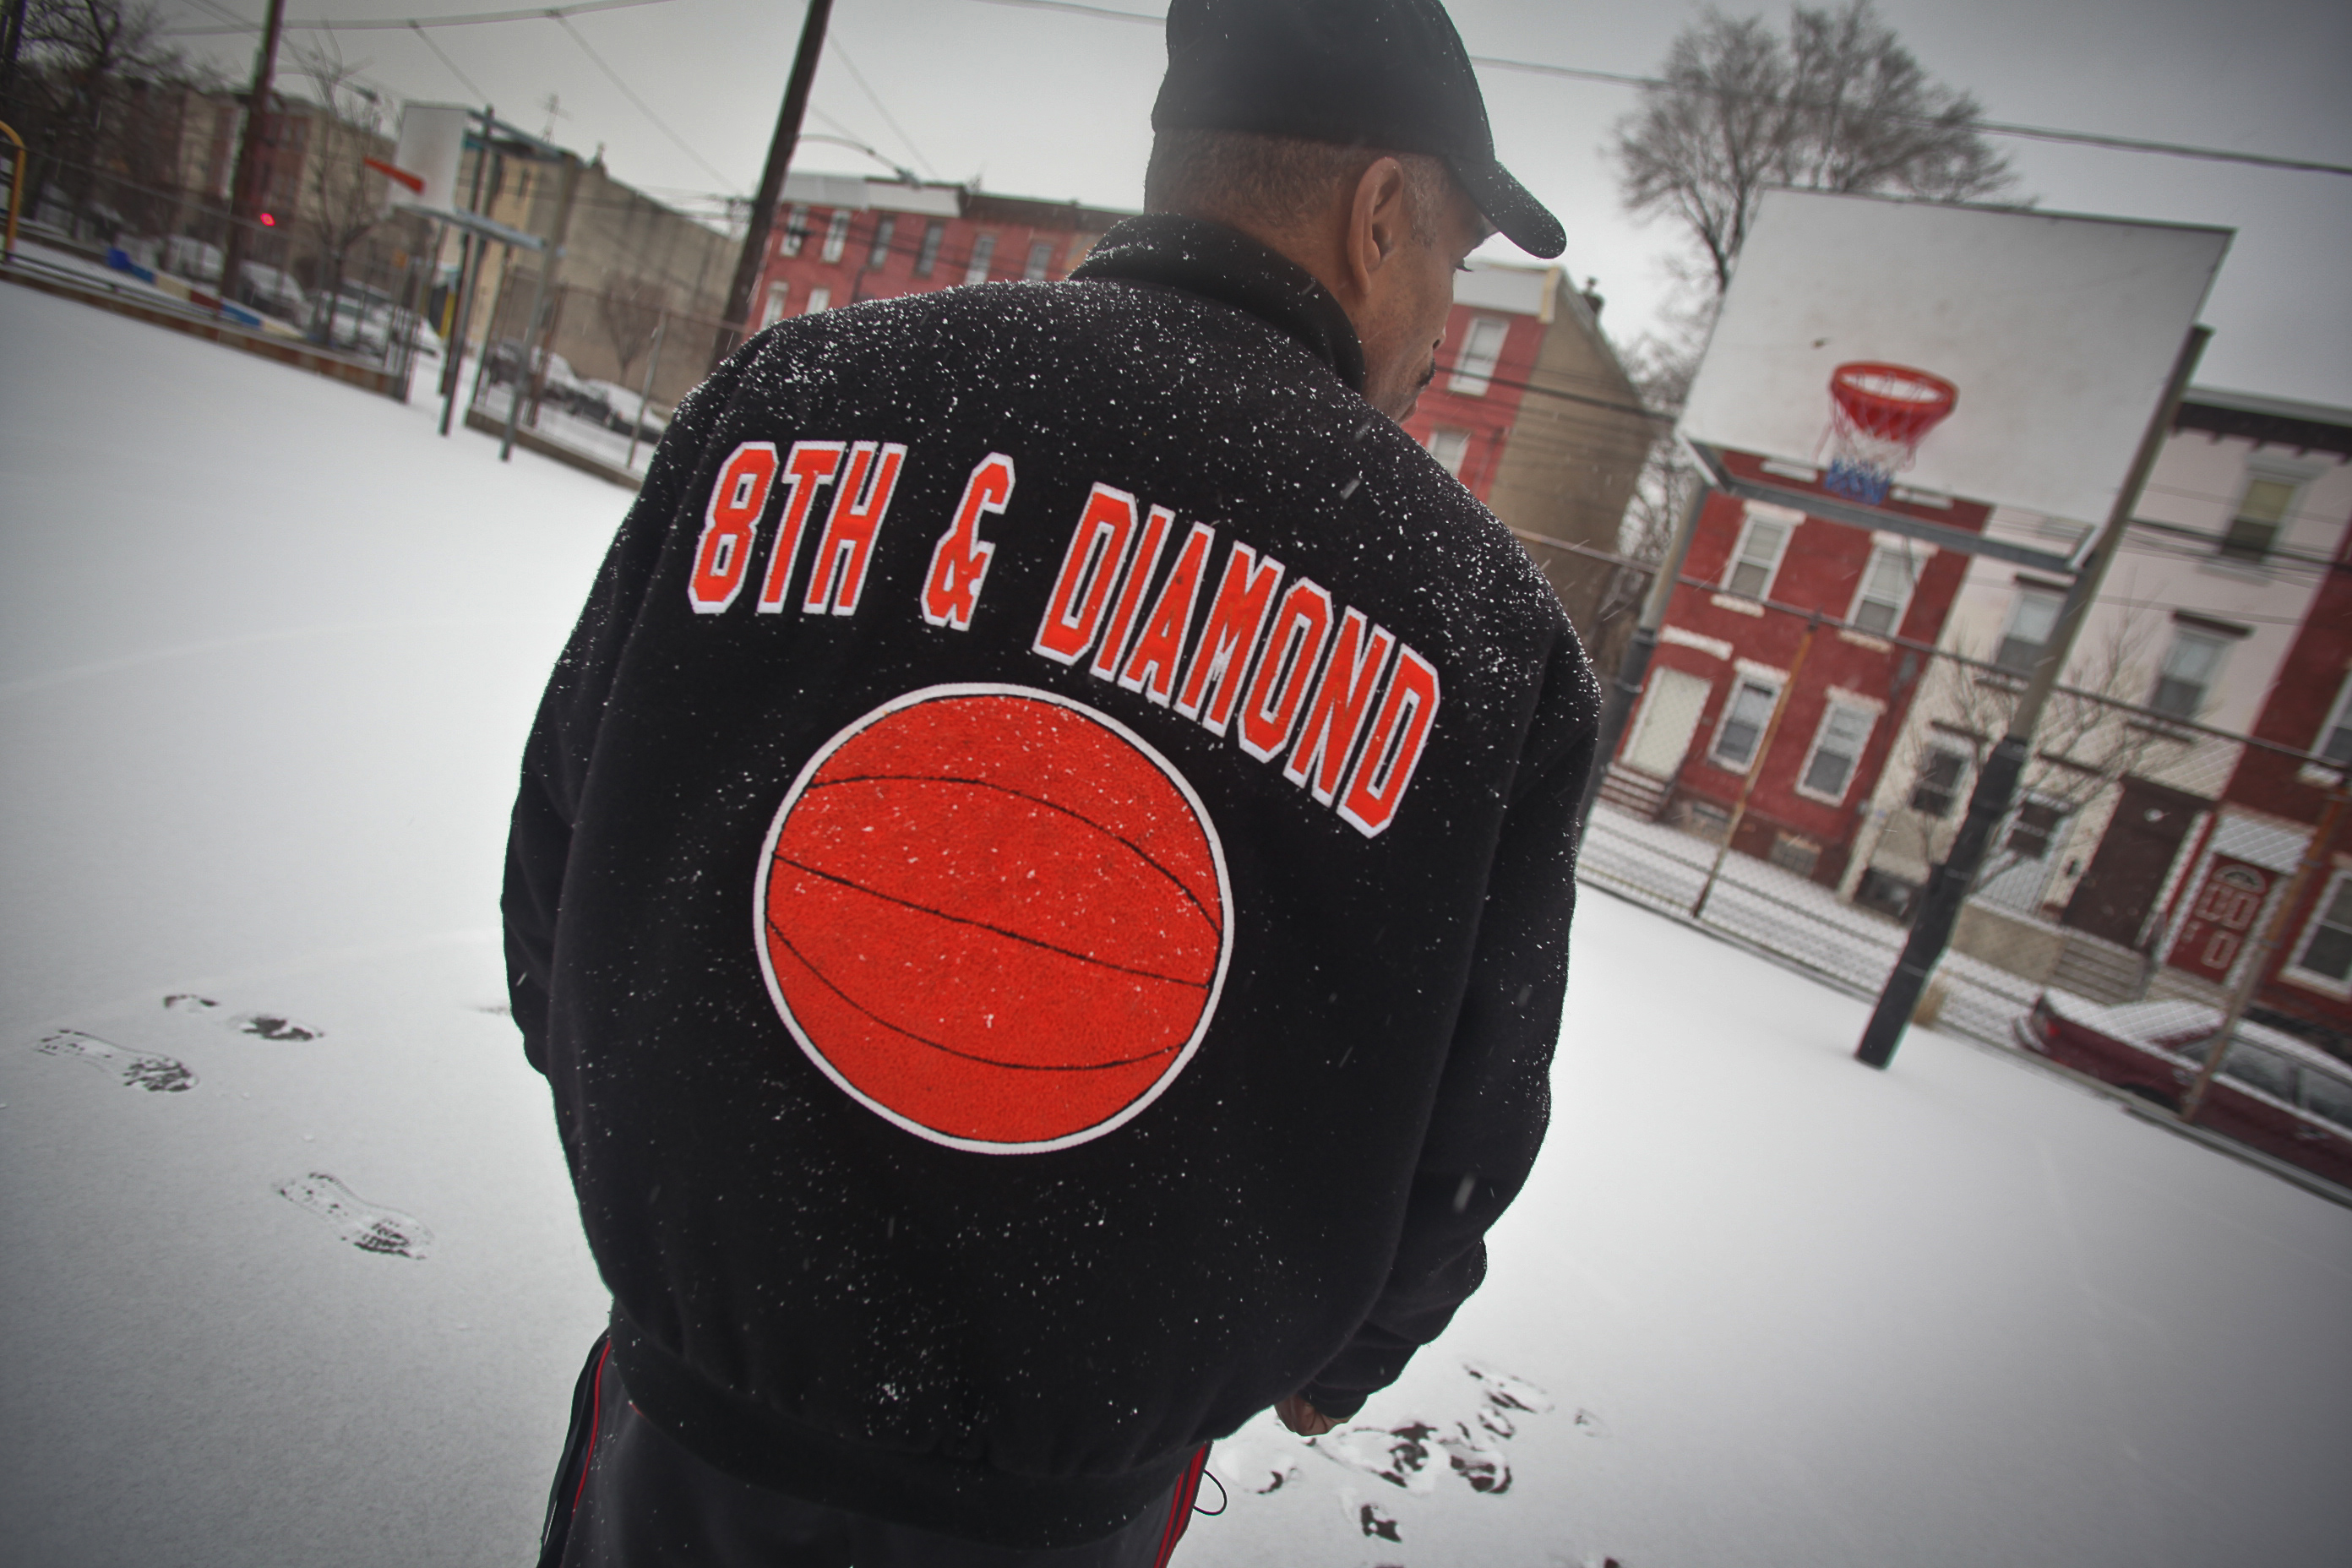 Dana Clark, the director of the 8th and Diamond playground, walks through a snowy basketball court.